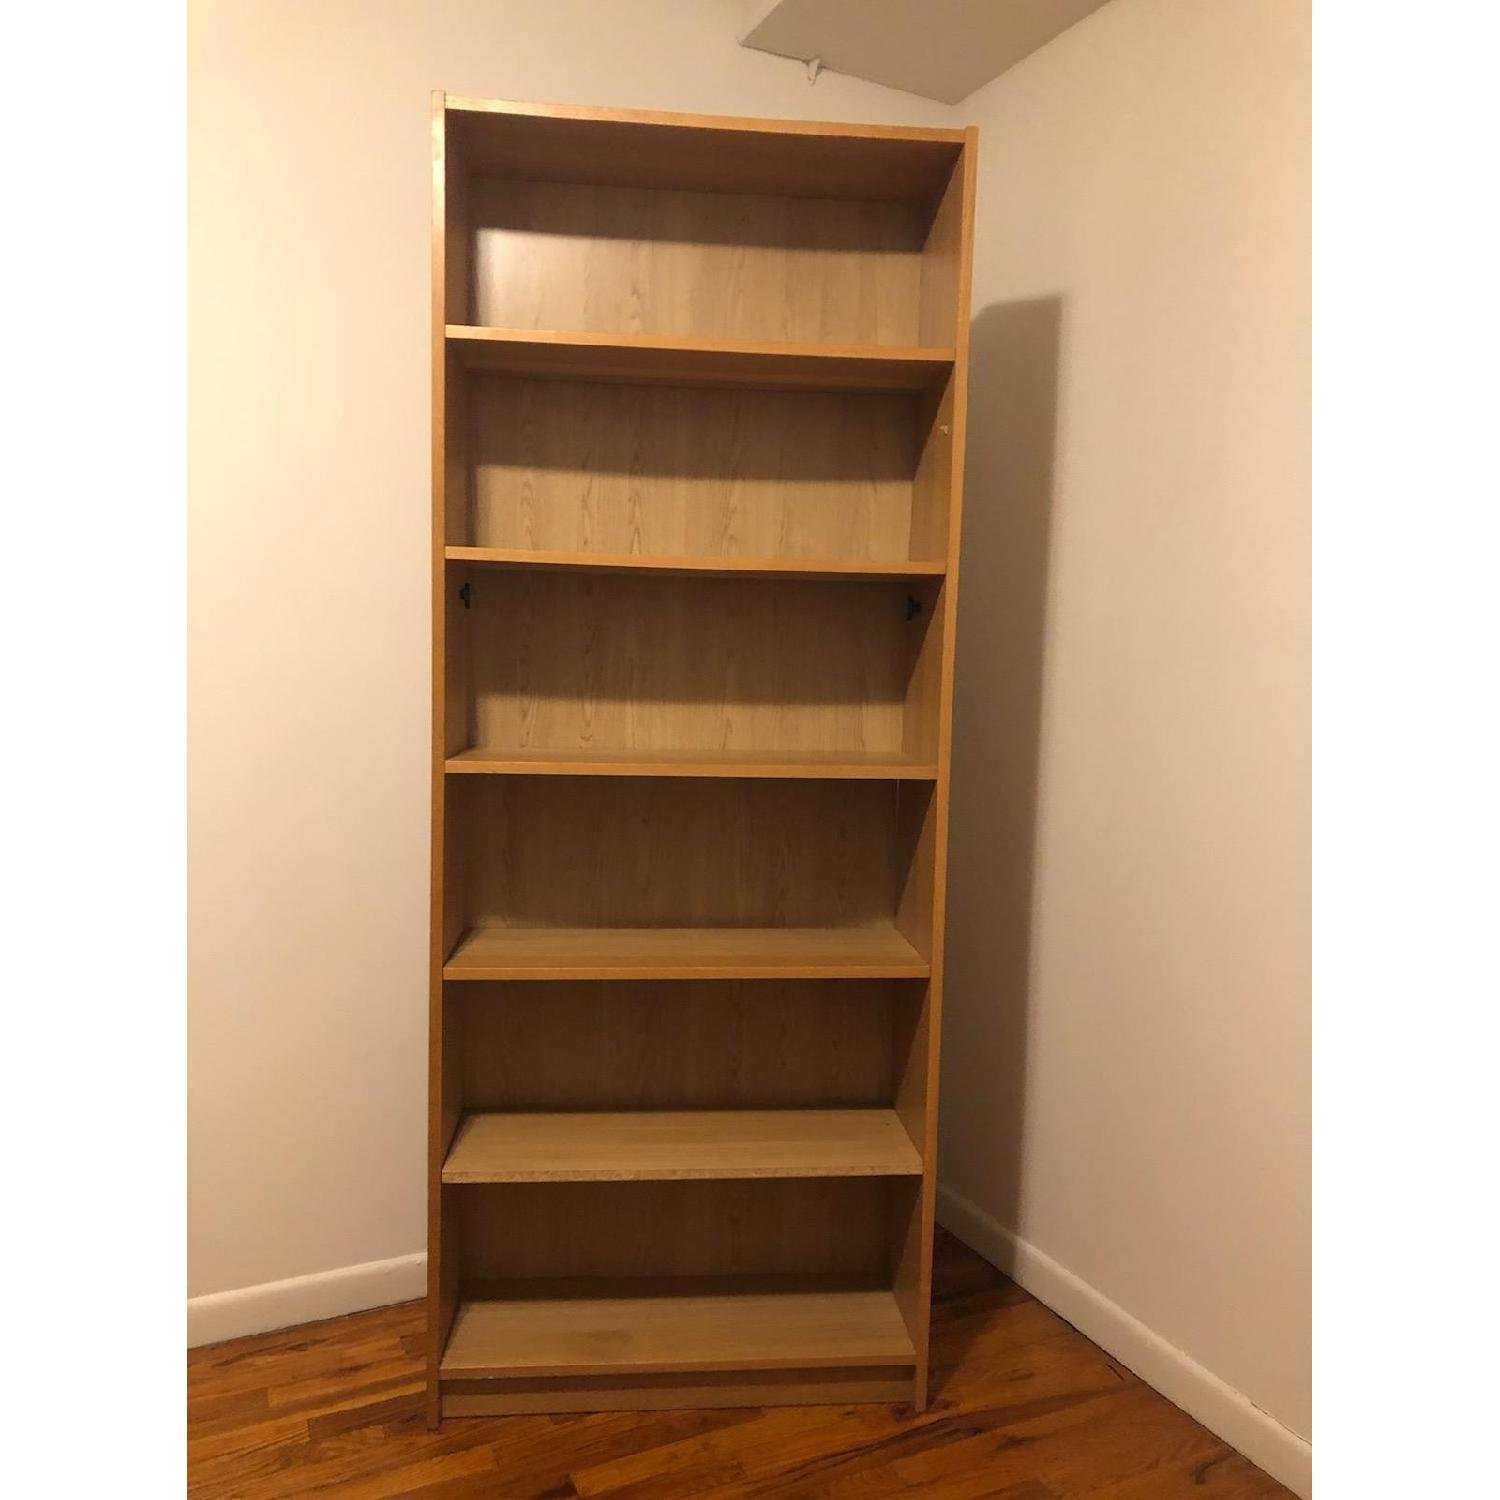 6 Shelves Bookcase-2